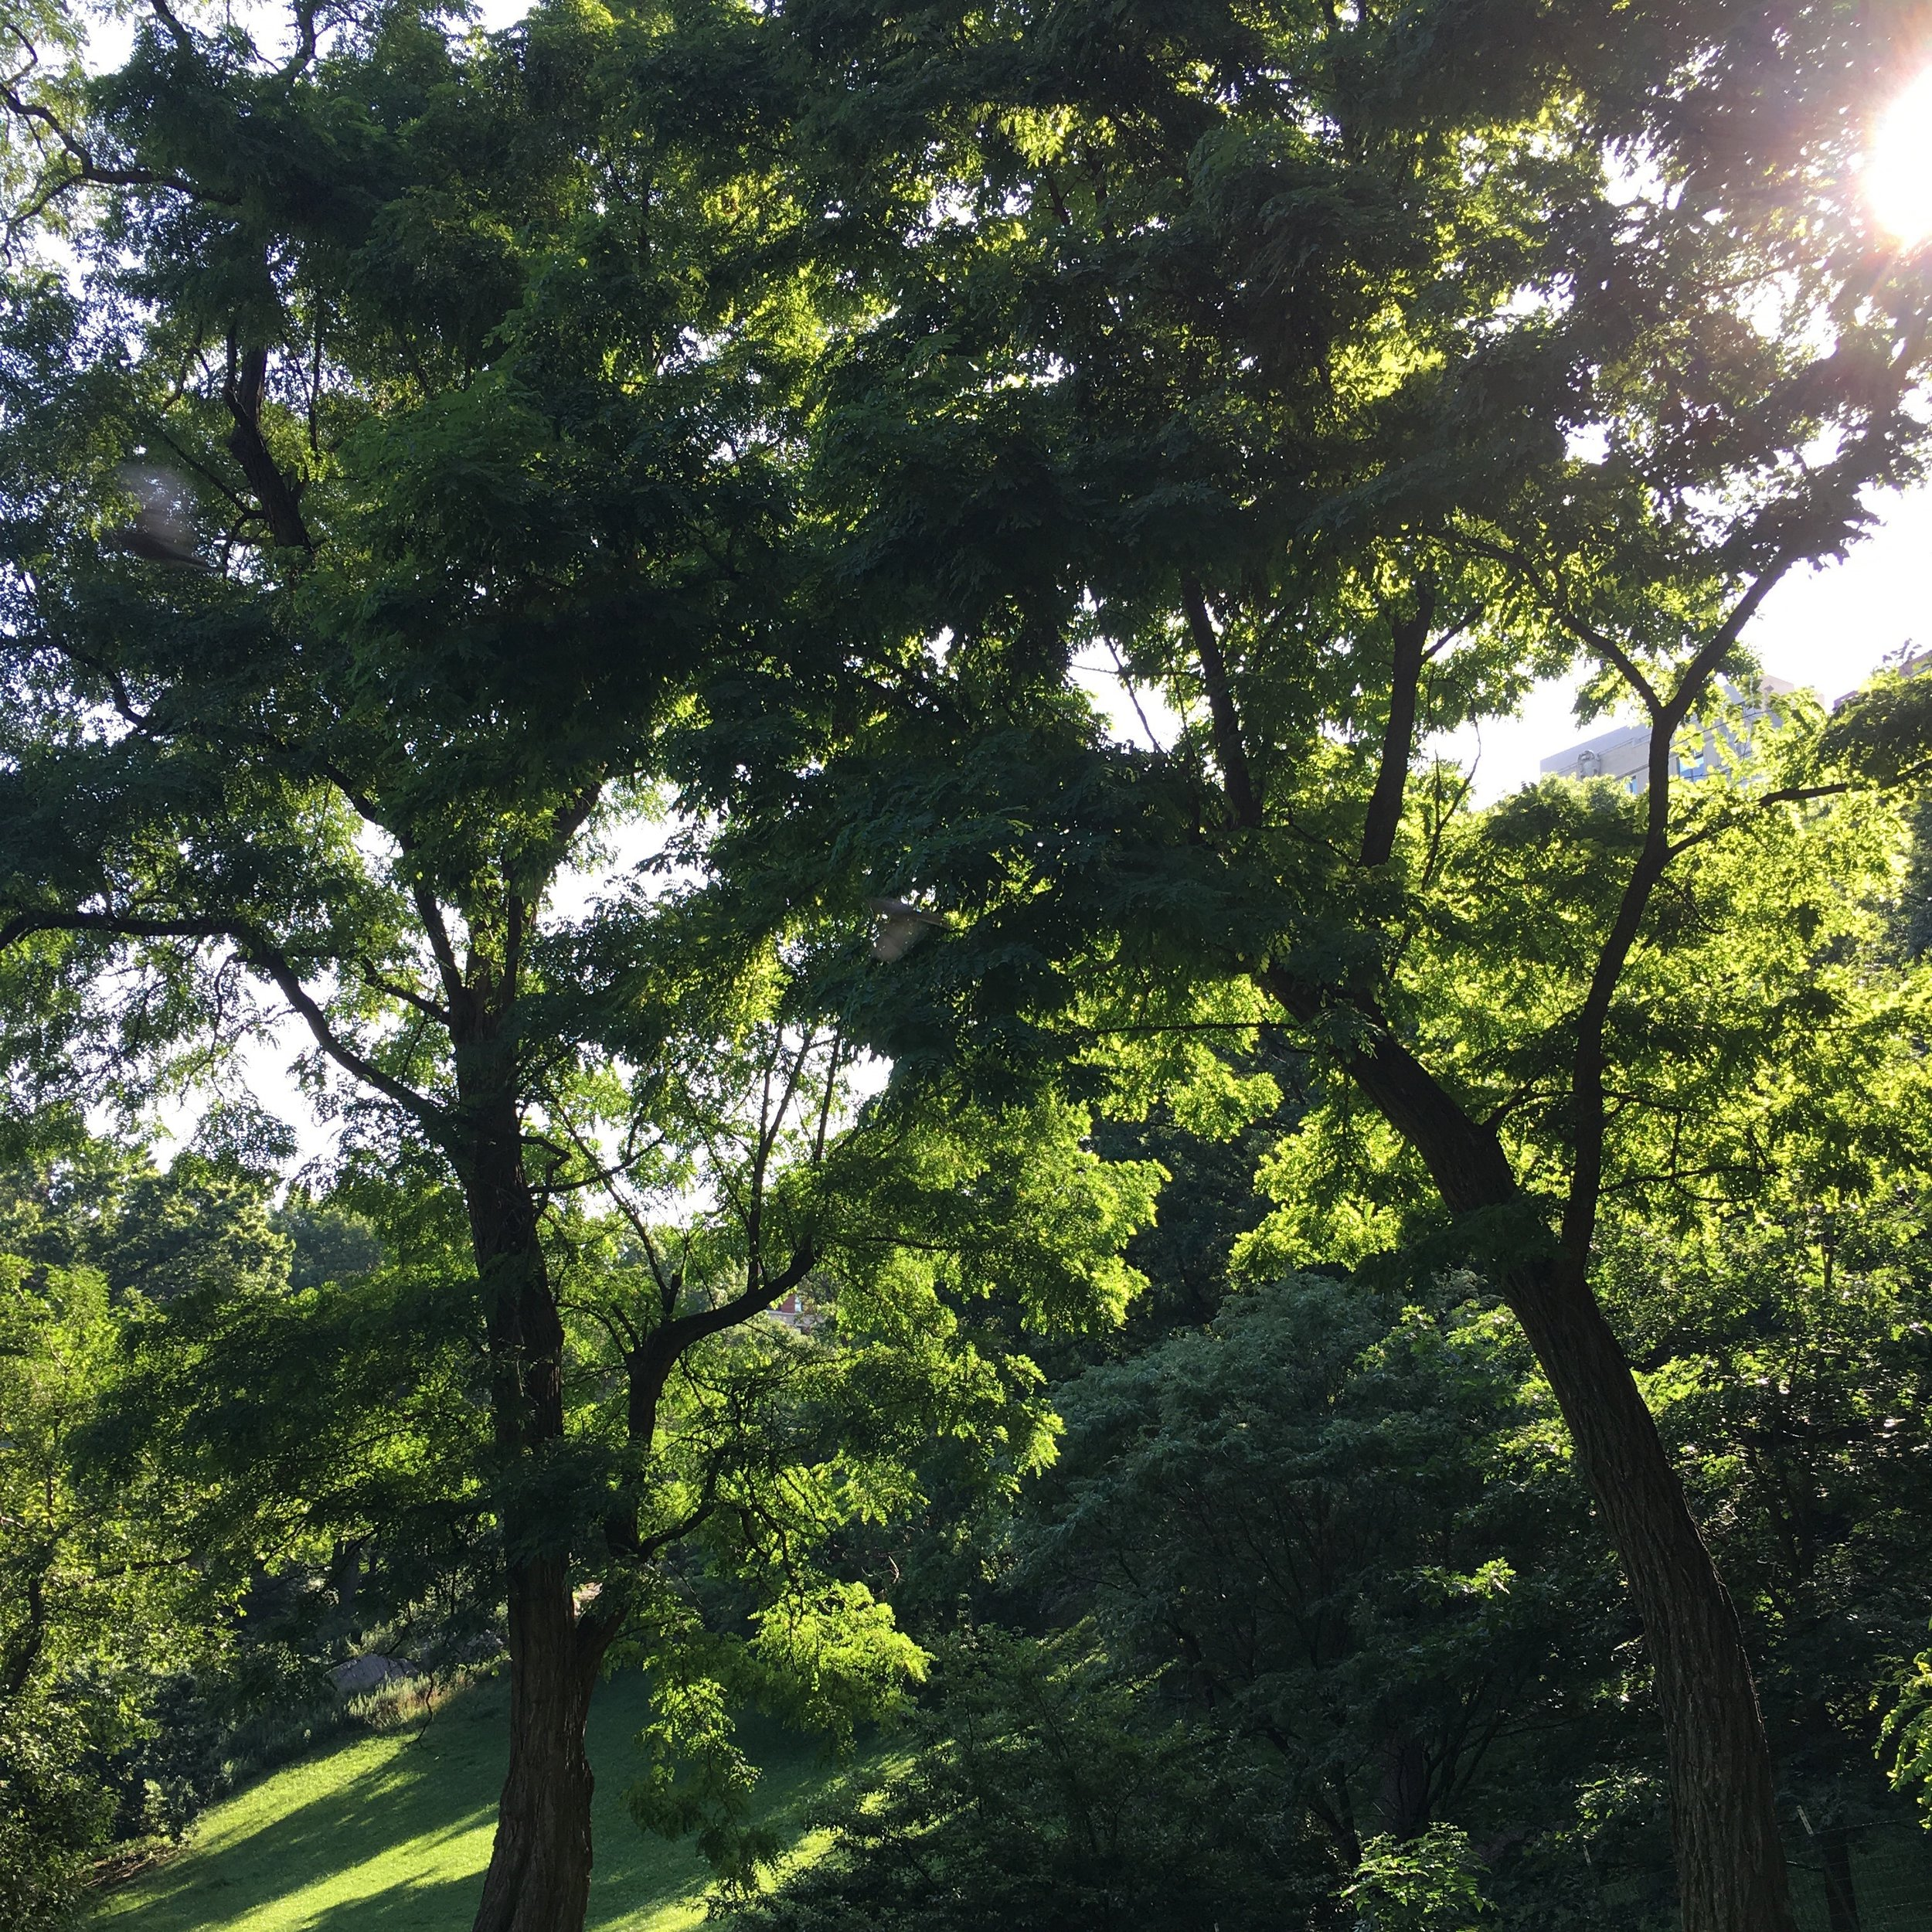 Just a typical insanely gorgeous morning in the Park.  New York City can look like this in the summer.